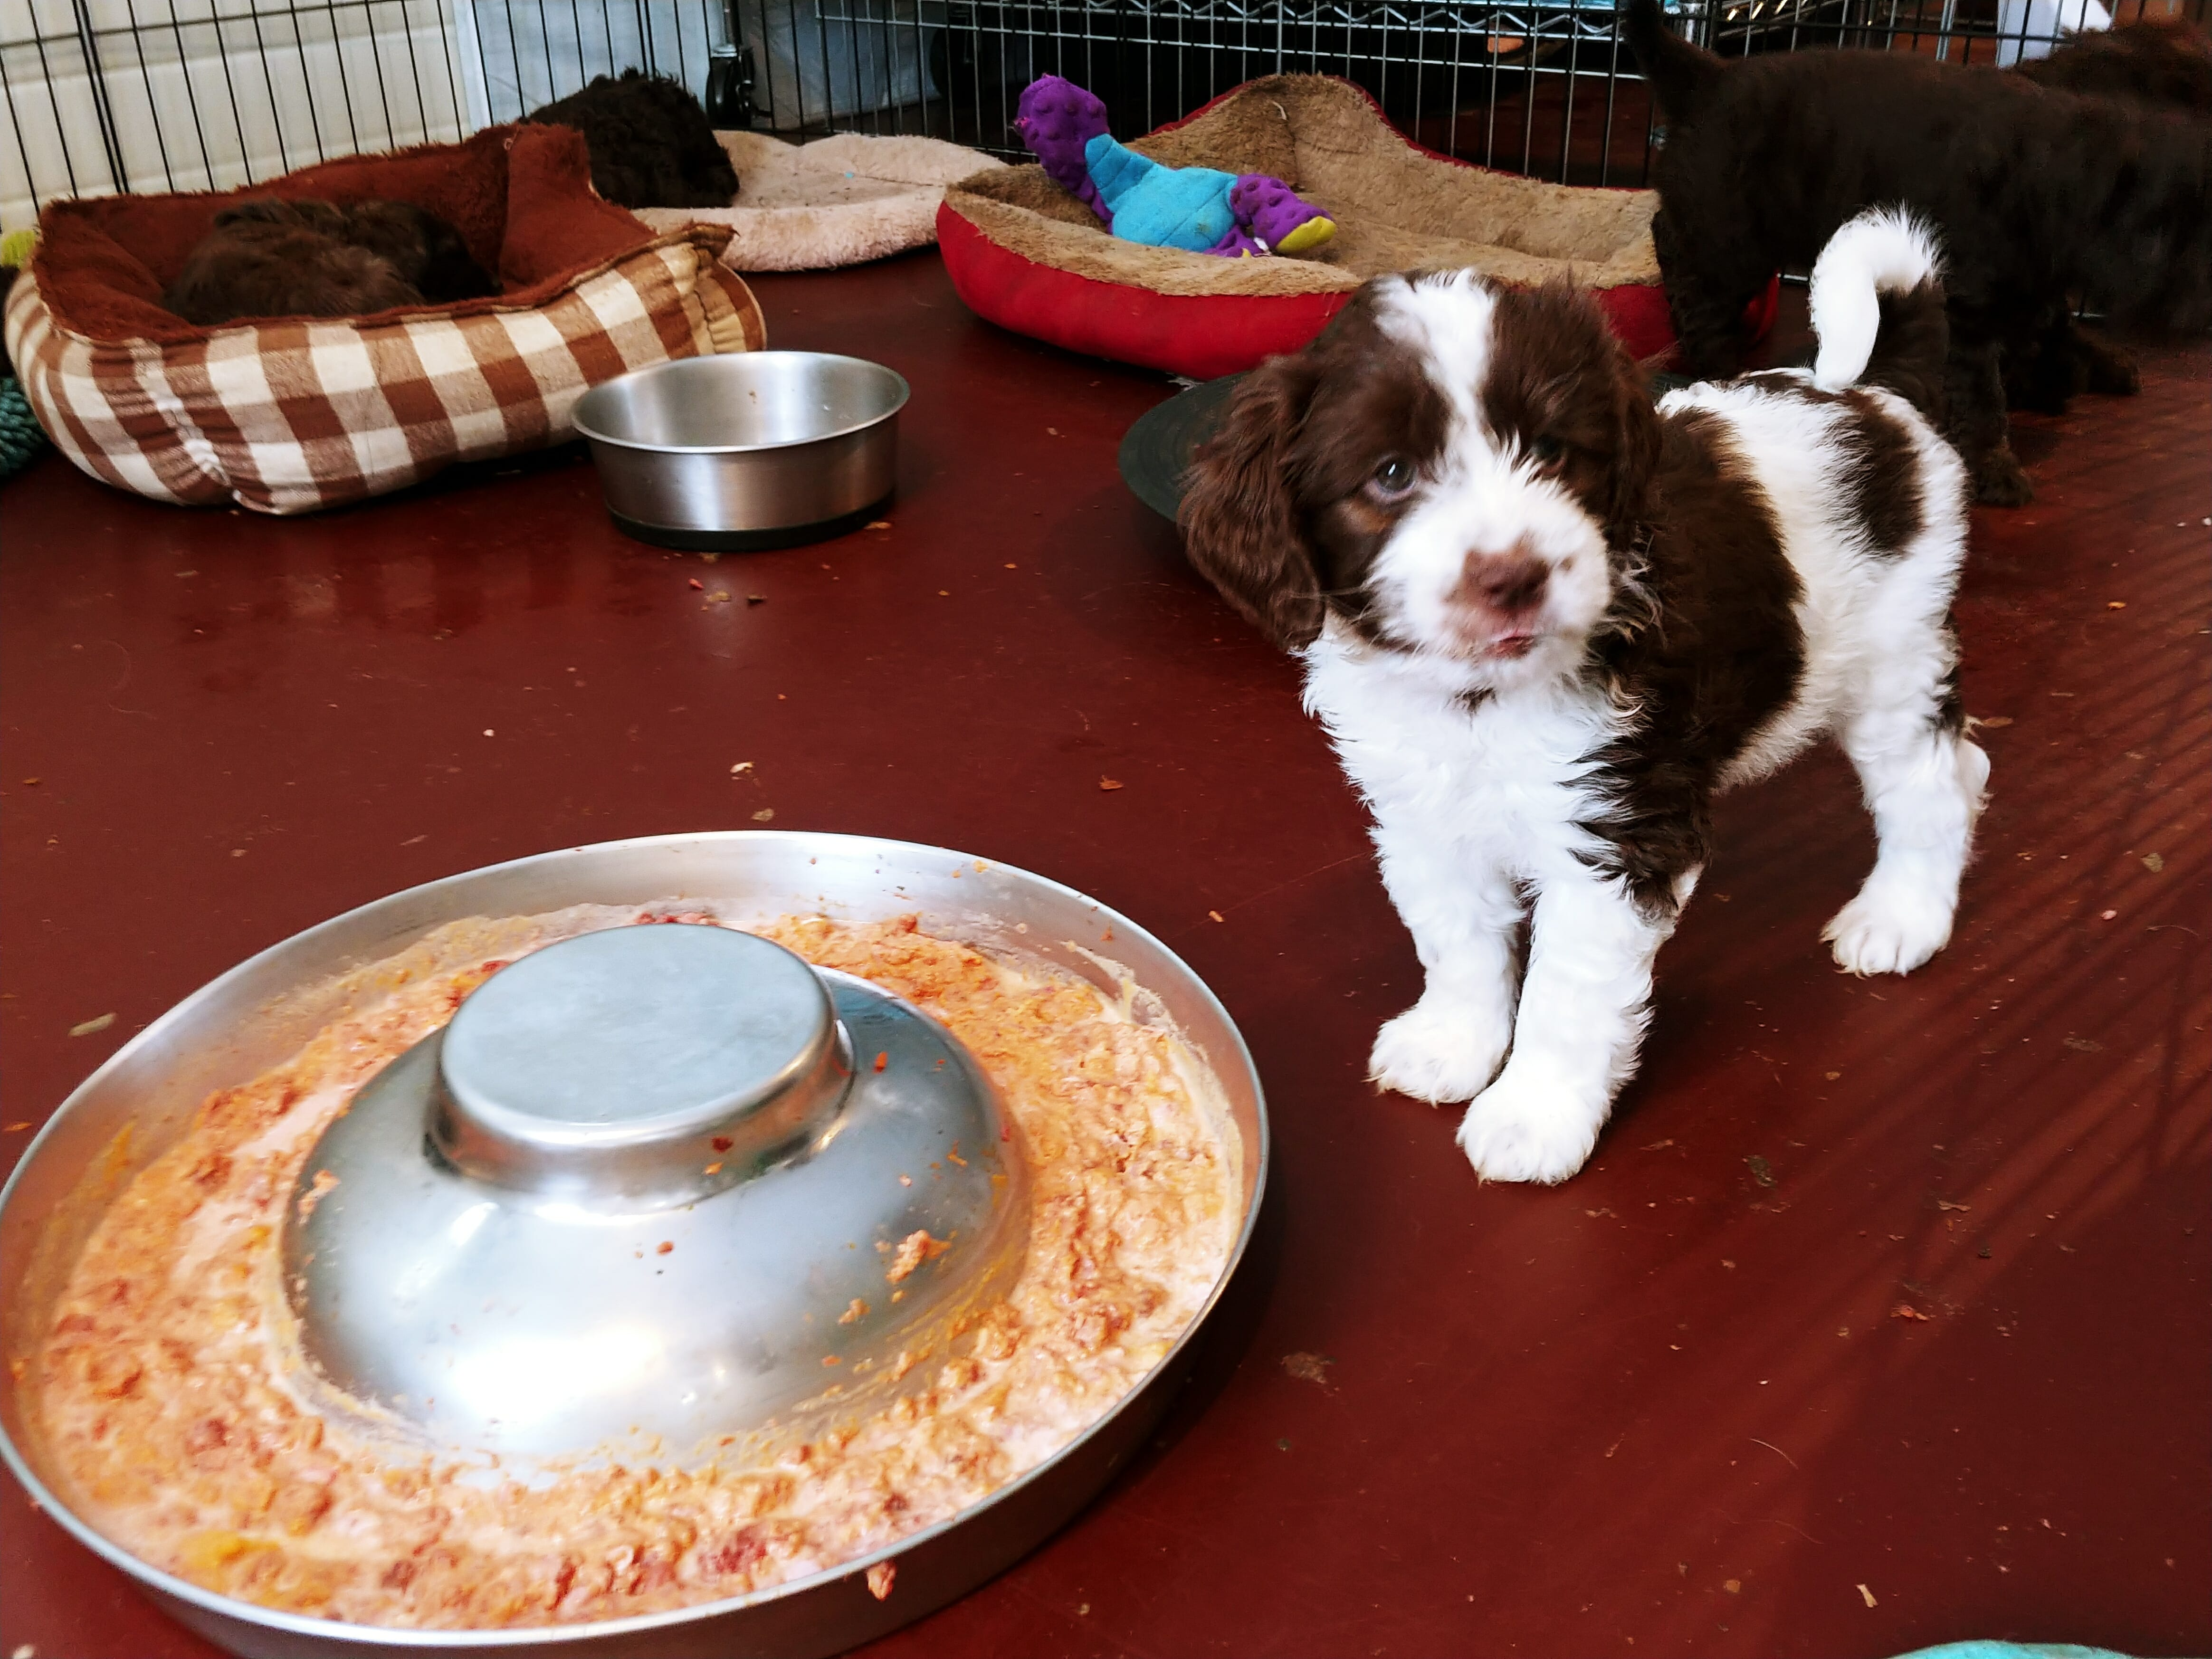 6-week old dark chocolate and white puppy standing next to a pan of orange soft food. In the background are various dog beds. The puppy is looking just to the right of the camera.